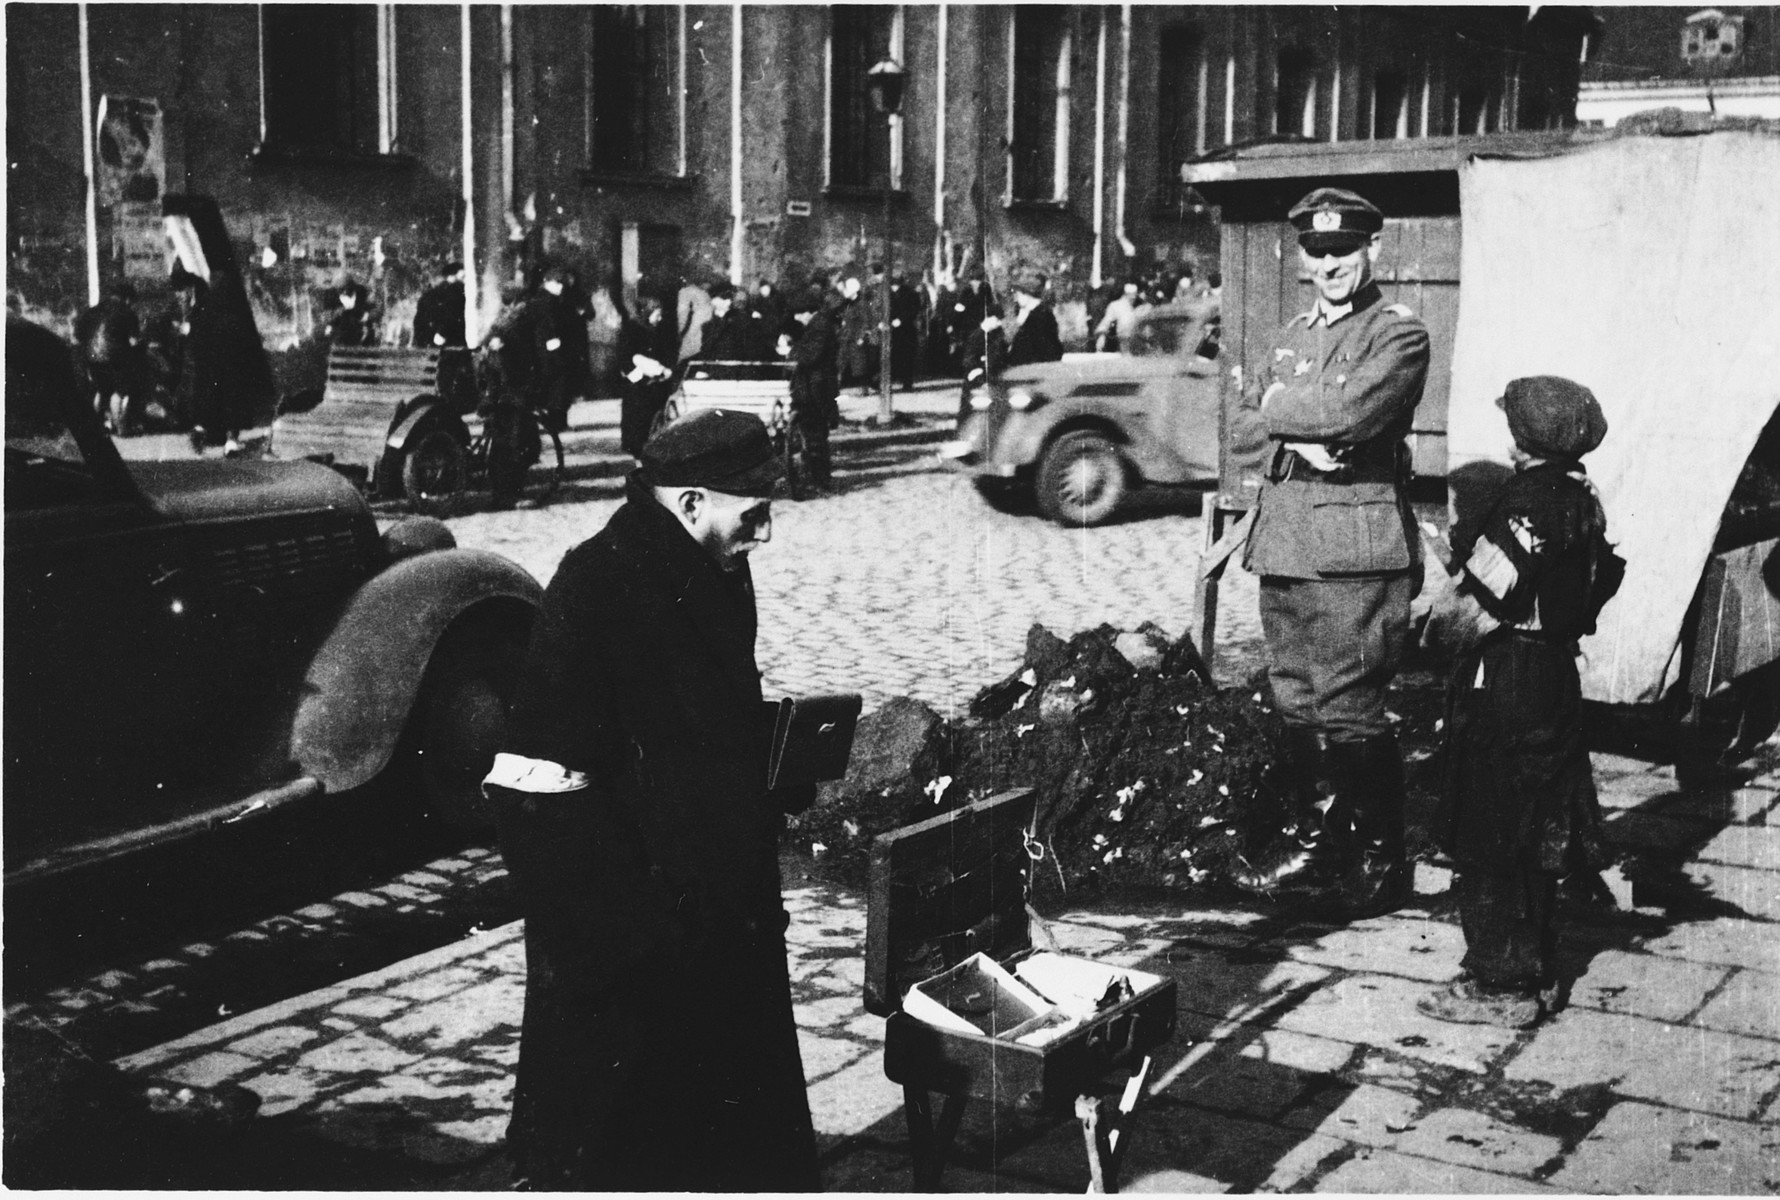 A Jew wearing an armband stands near a makeshift vending stand on a street in the Warsaw ghetto.  A German officer (top right) views the scene.